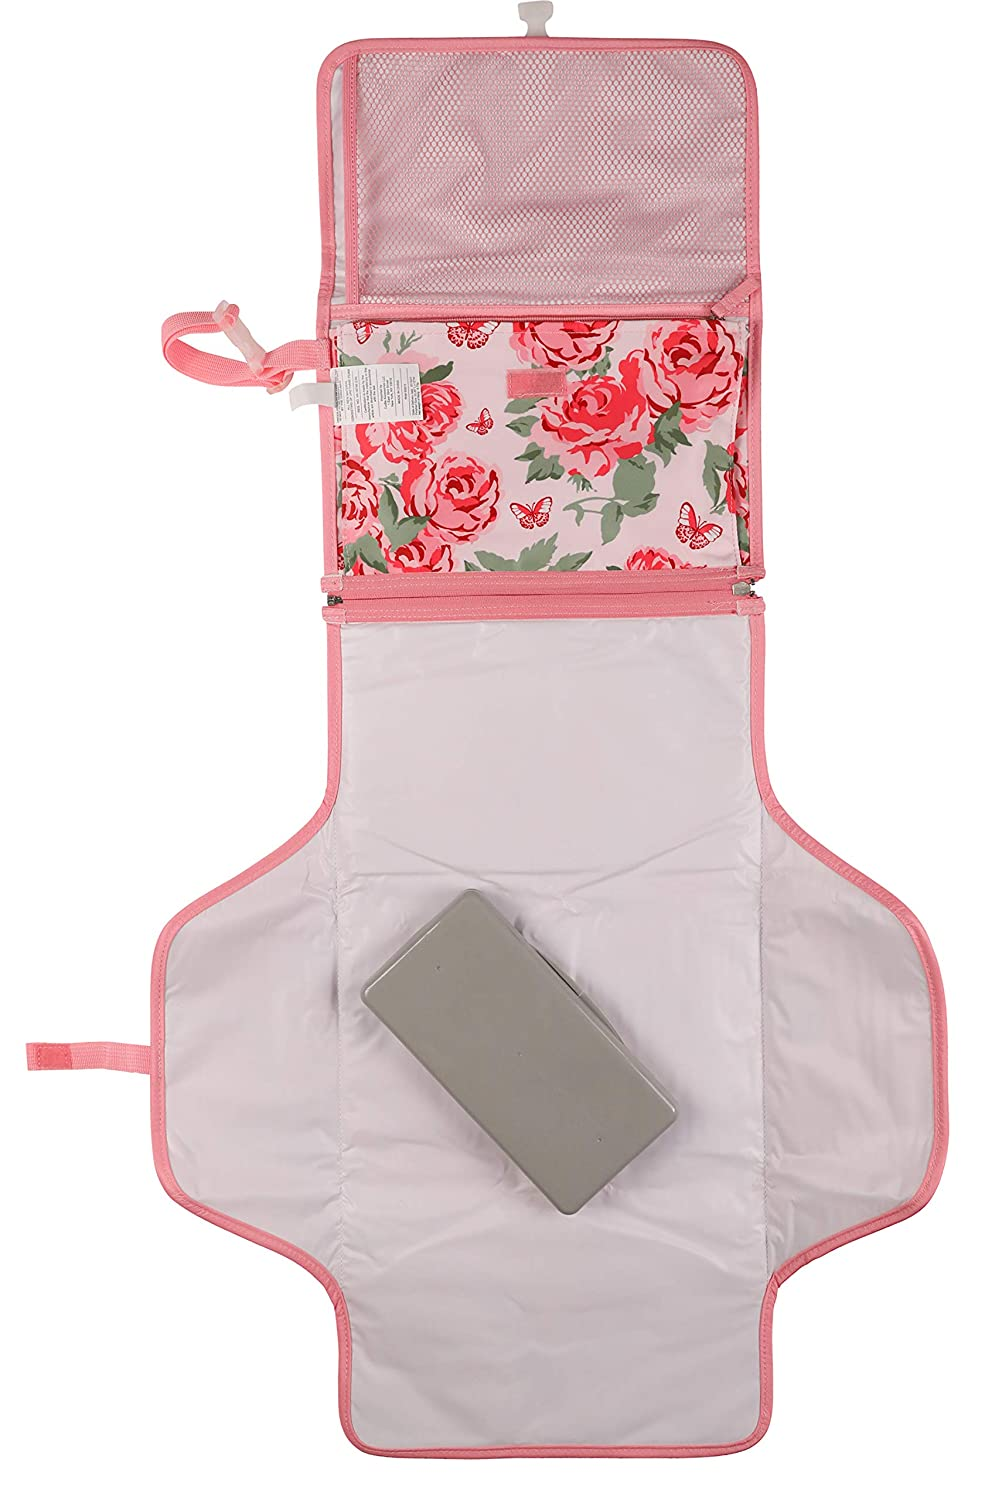 Laura Ashley Baby Portable Changing Pad, Pink Rosette Print